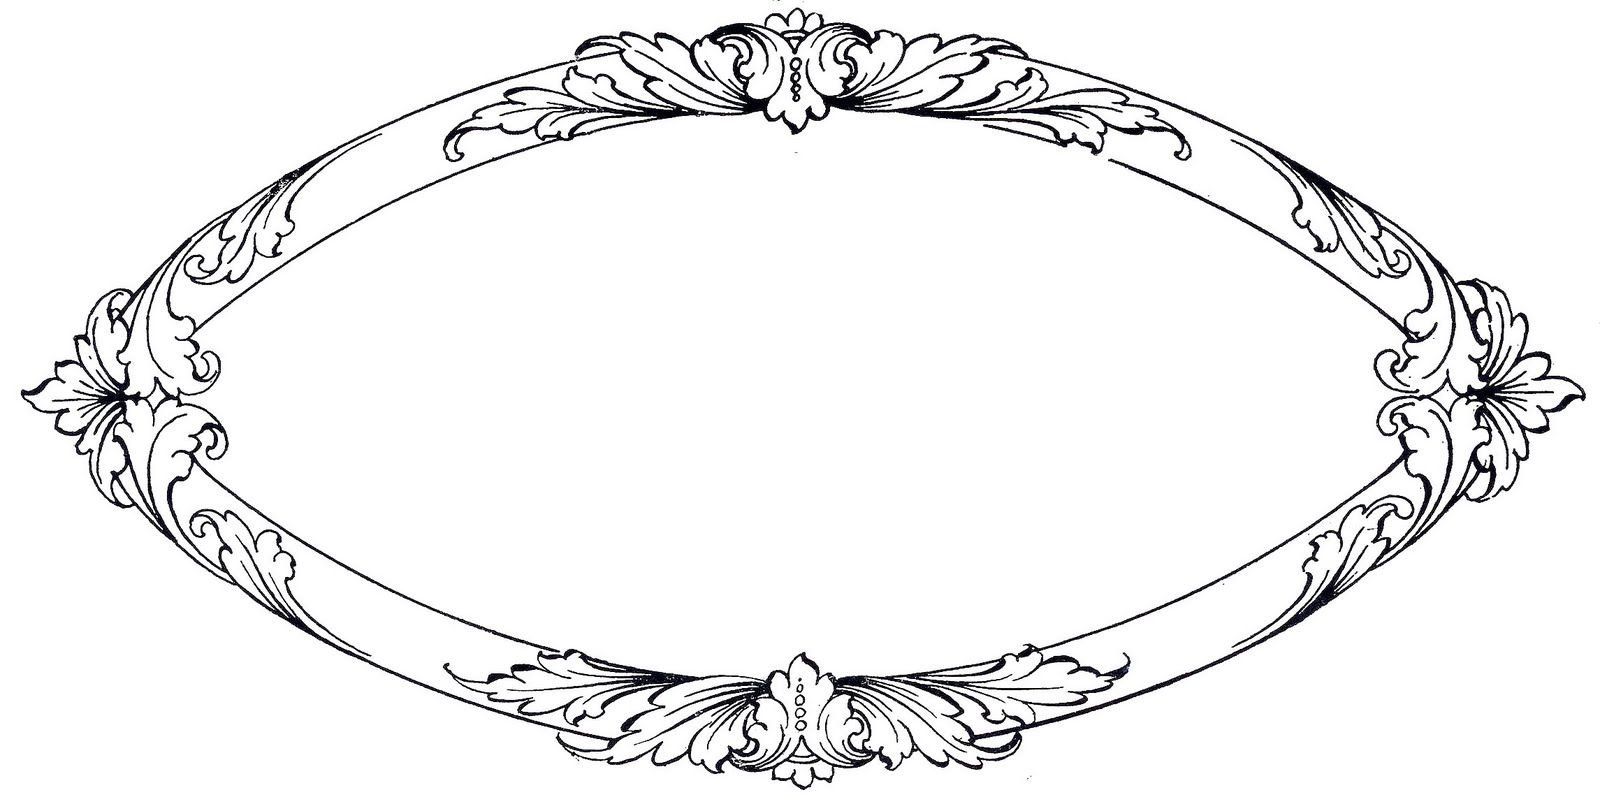 vintage clip art ornate oval frame with scrolls vintage clip art rh pinterest co uk vintage picture frame clipart vintage floral frame clipart